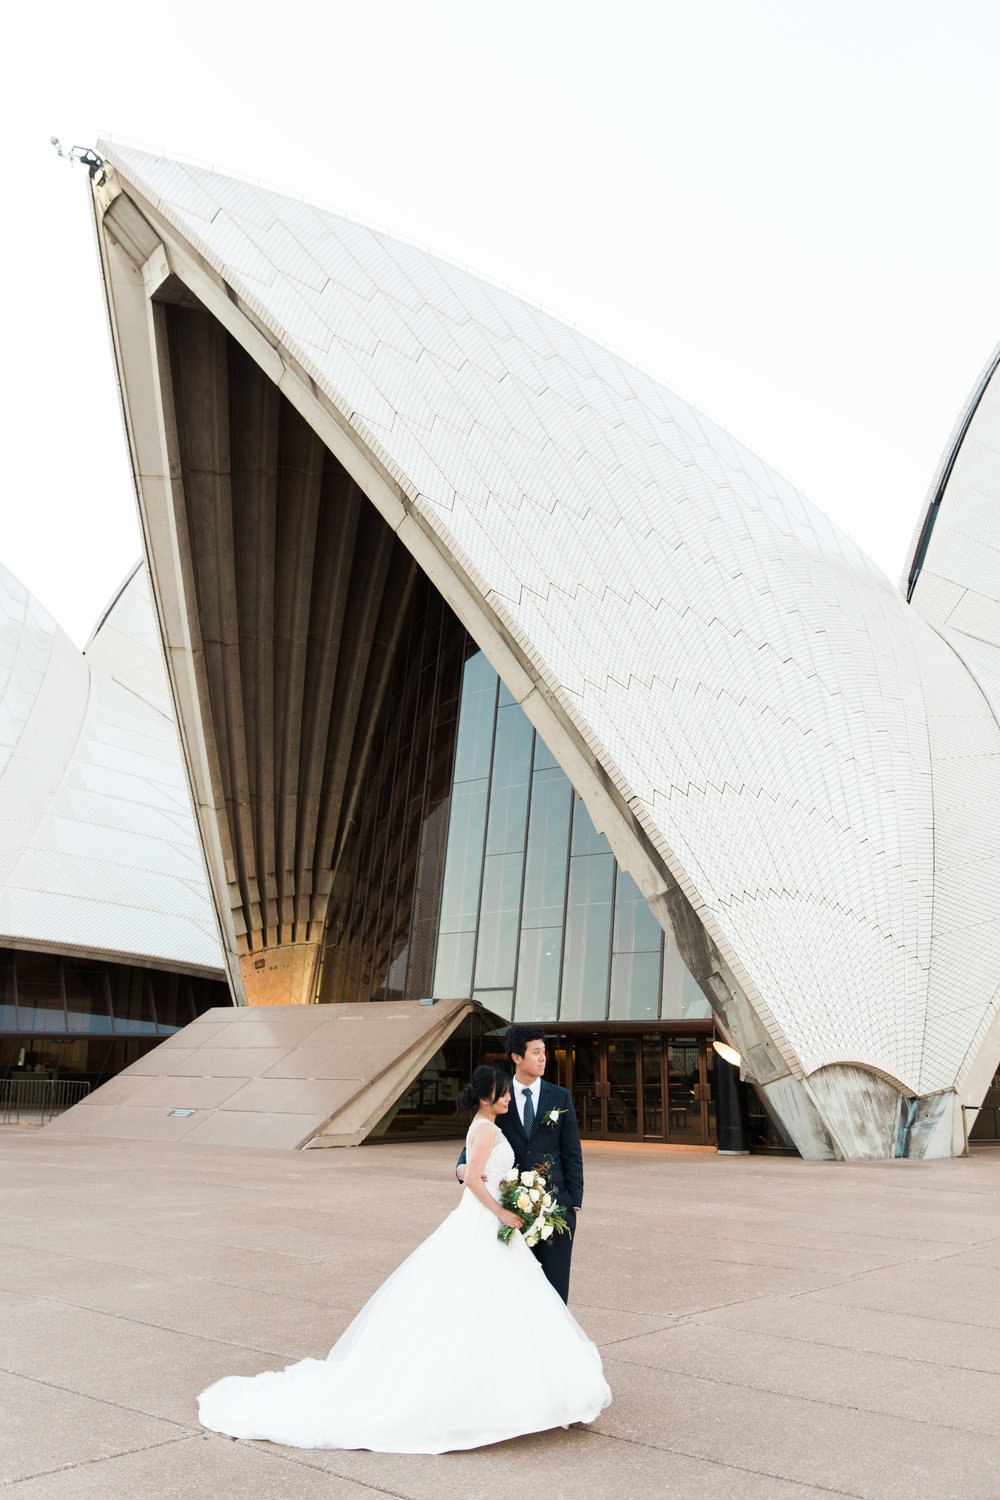 00053- Australia Sydney Wedding Photographer Sheri McMahon.jpg